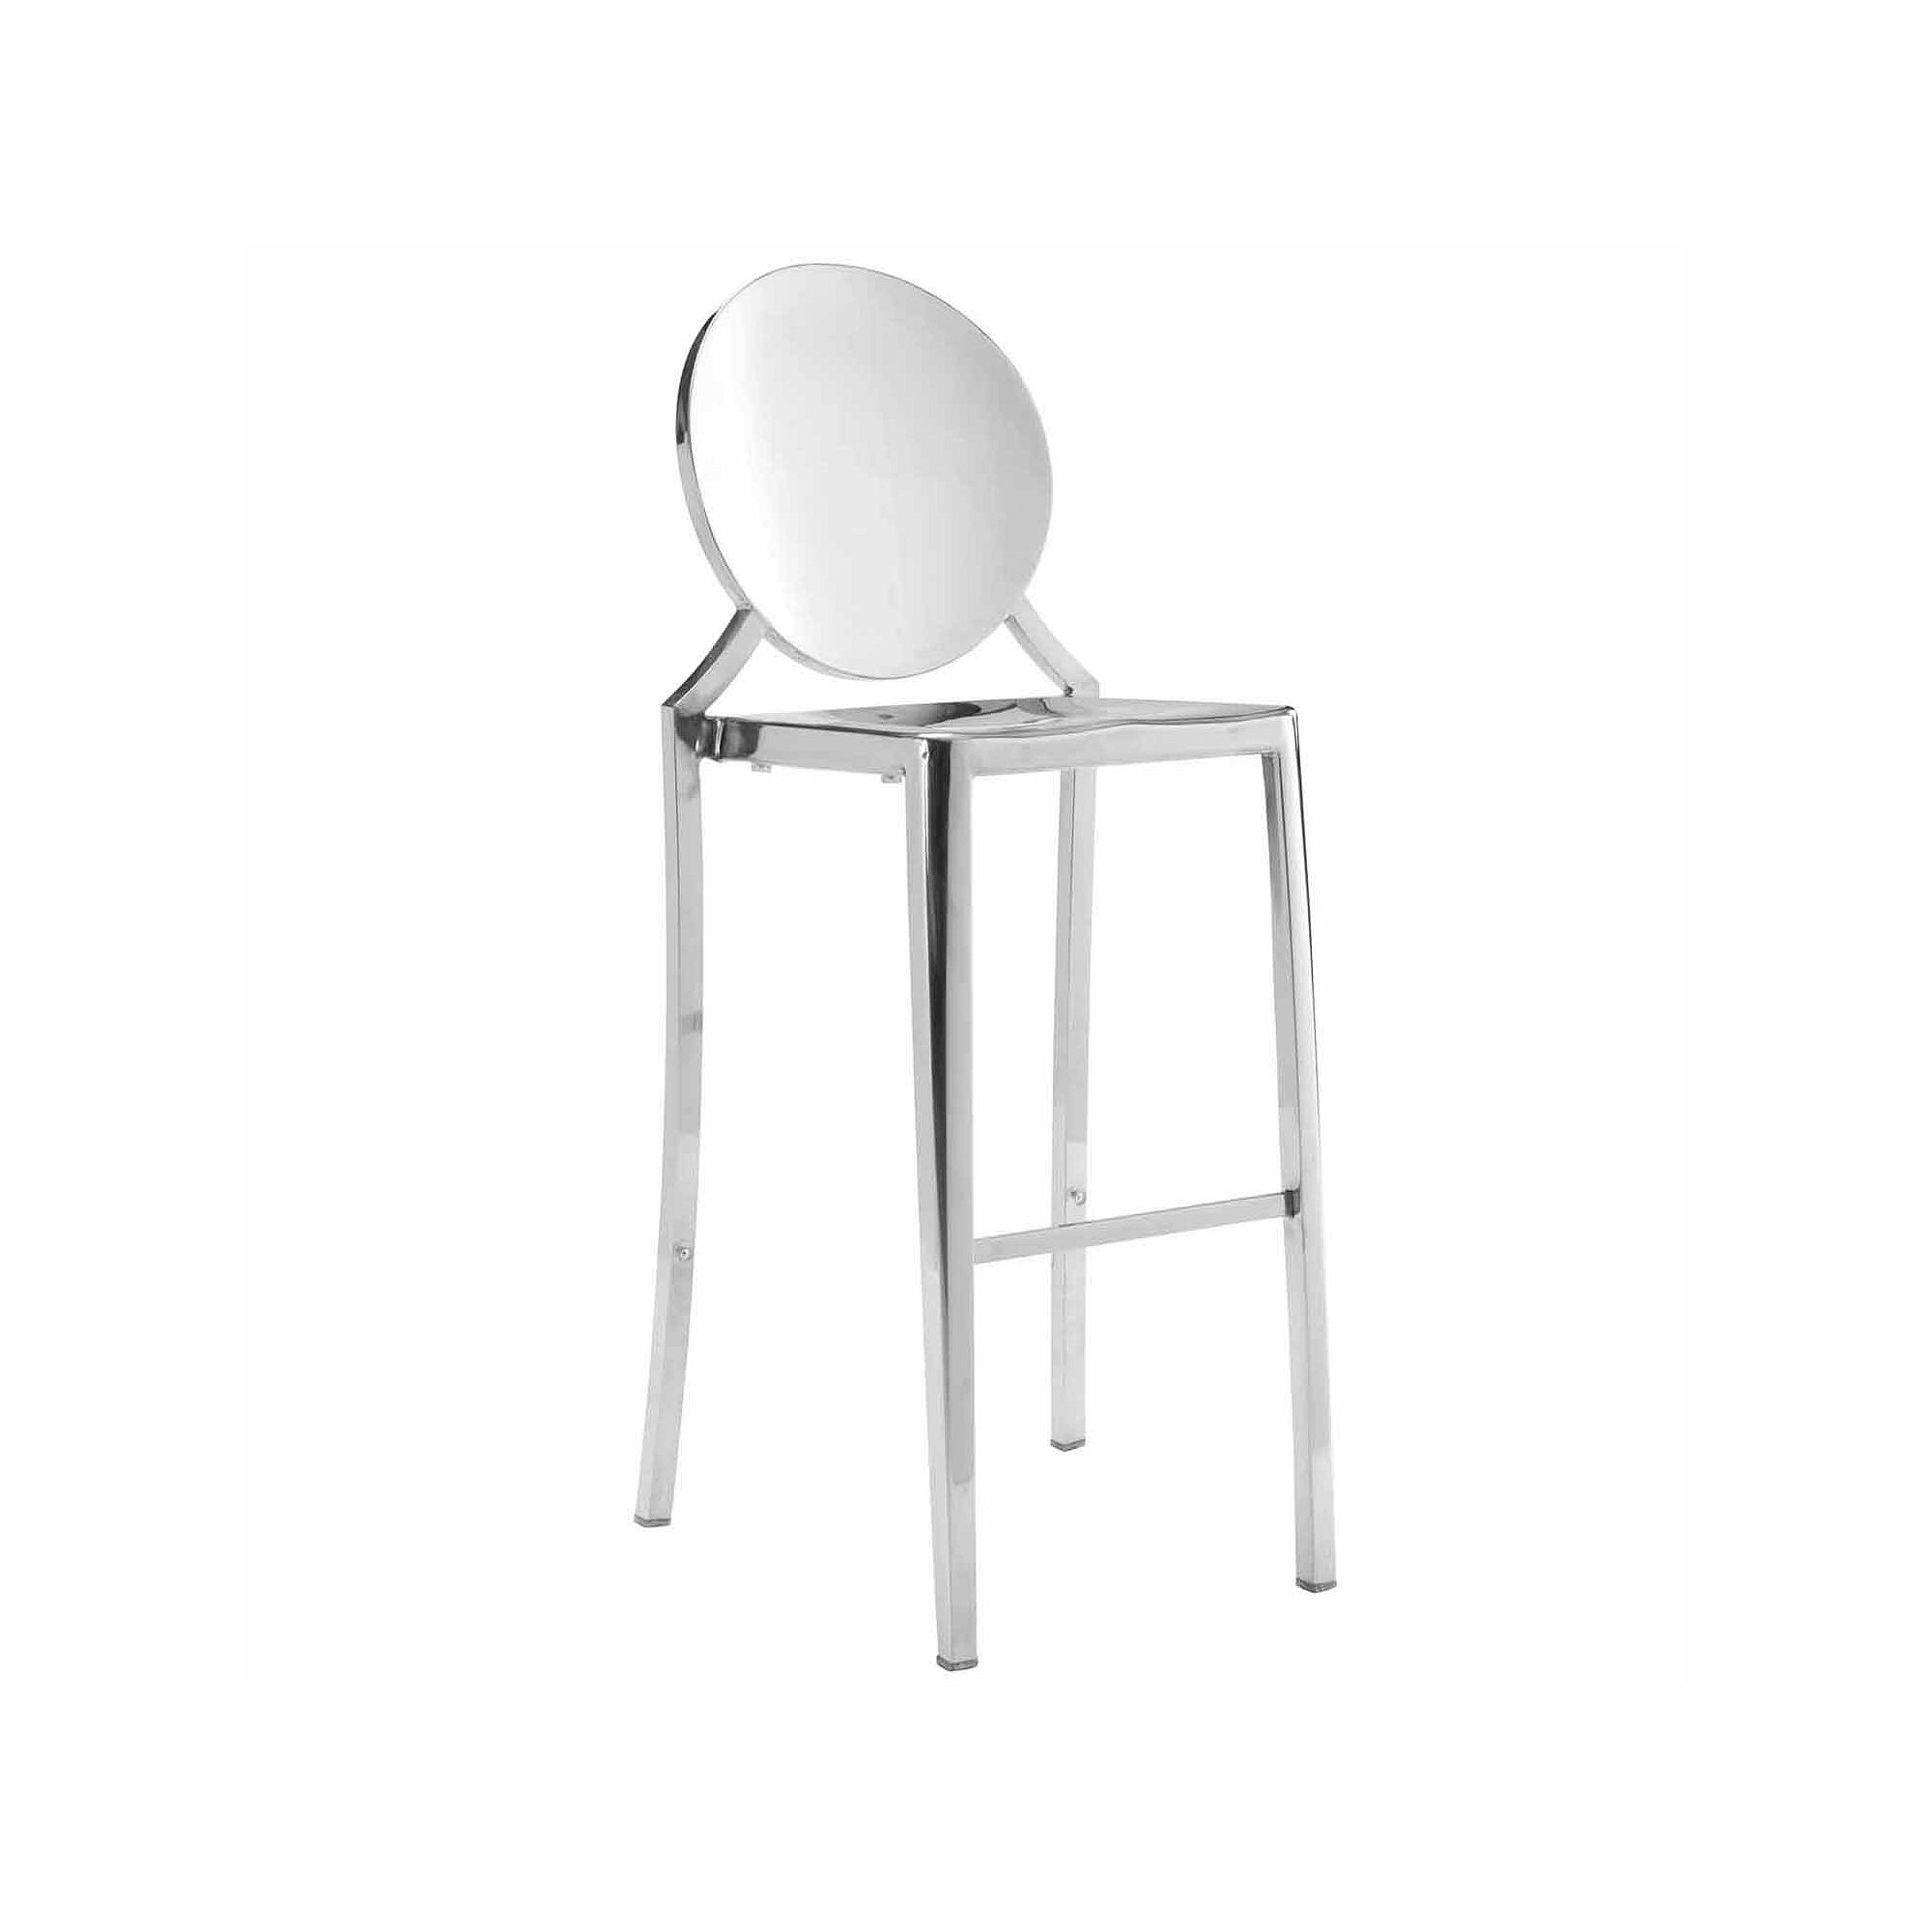 Zuo Modern 2-pc. Eclipse Barstool Set